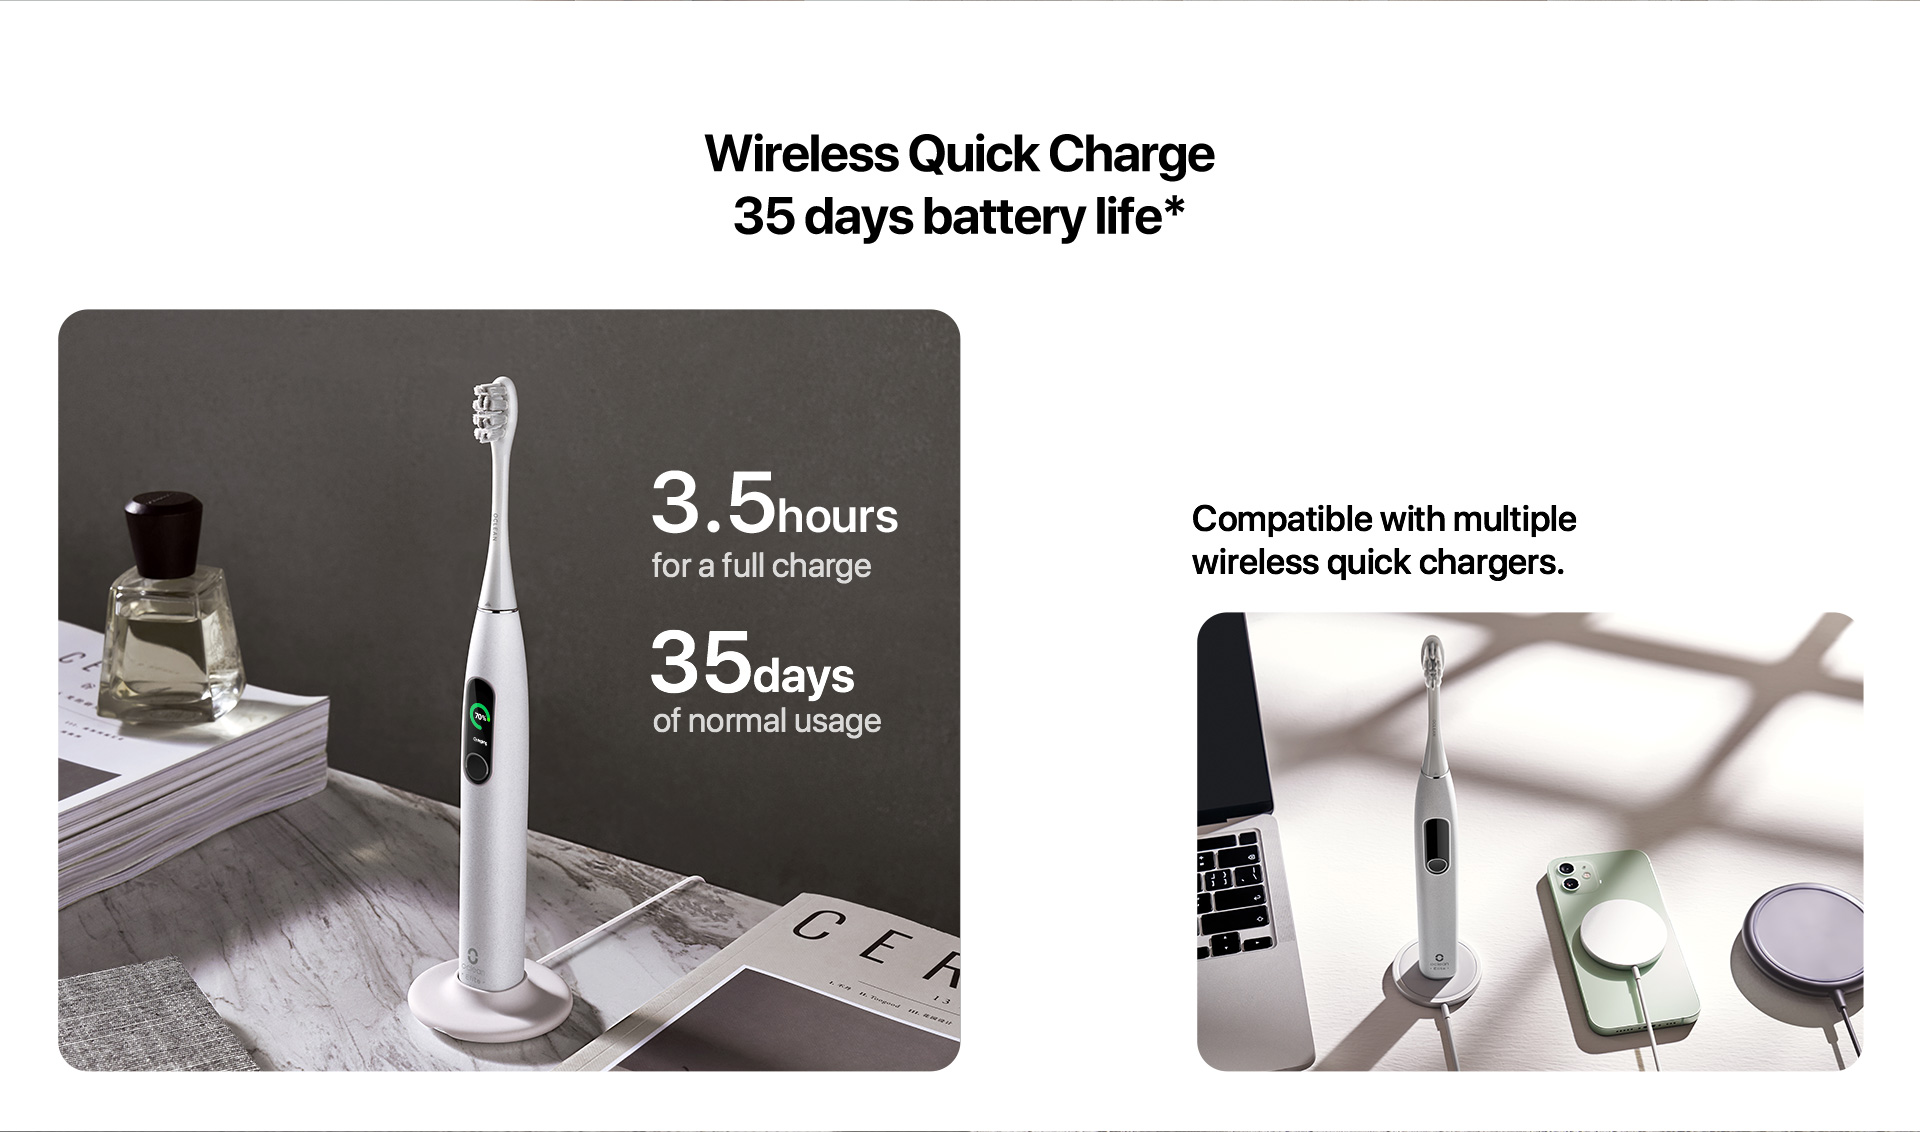 wireless Quick charge 35 days battery life